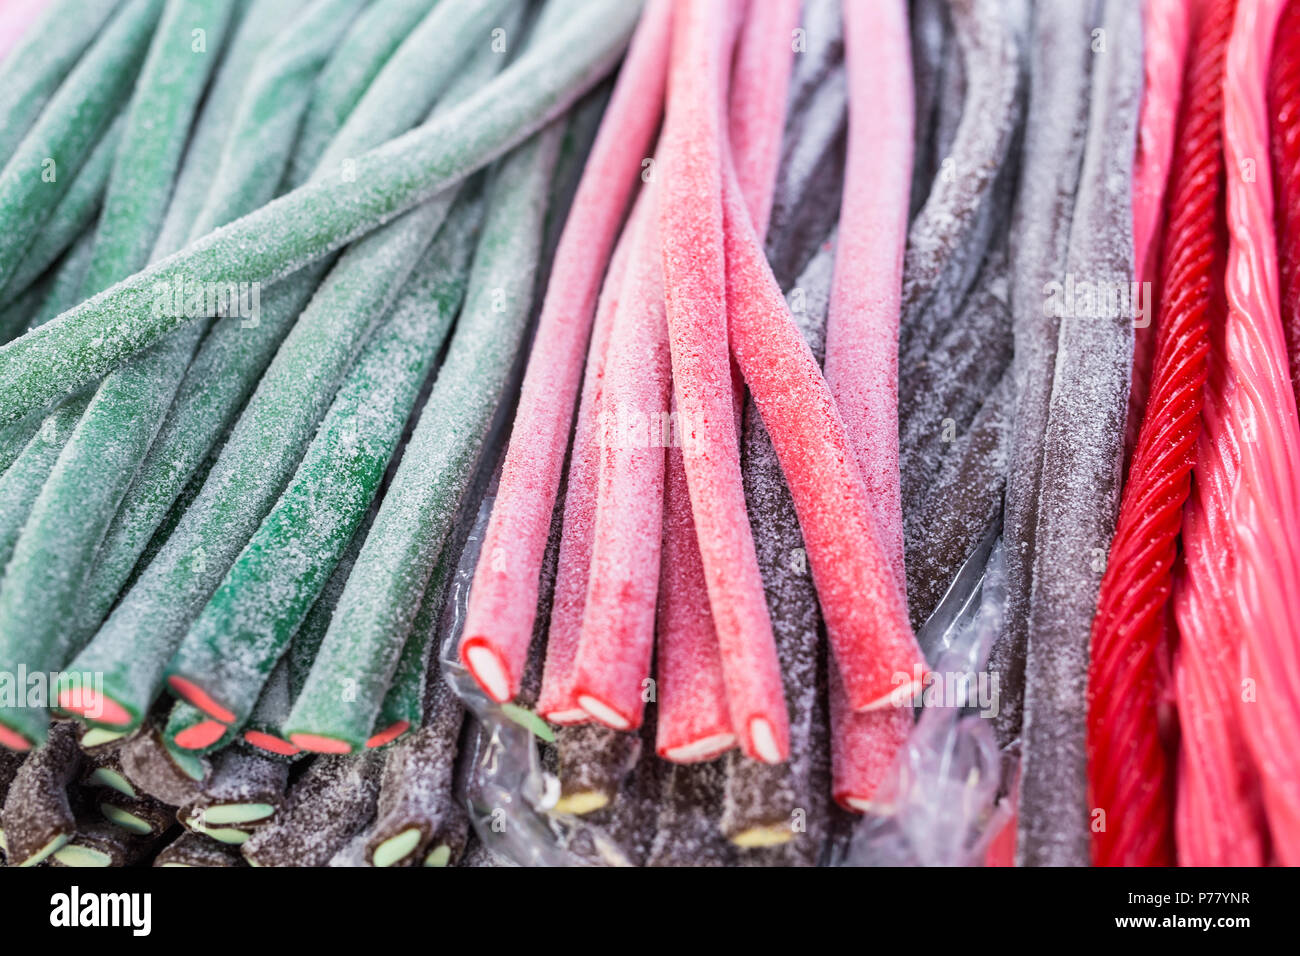 Wonderful candy sticks in any color and appearance - Stock Image